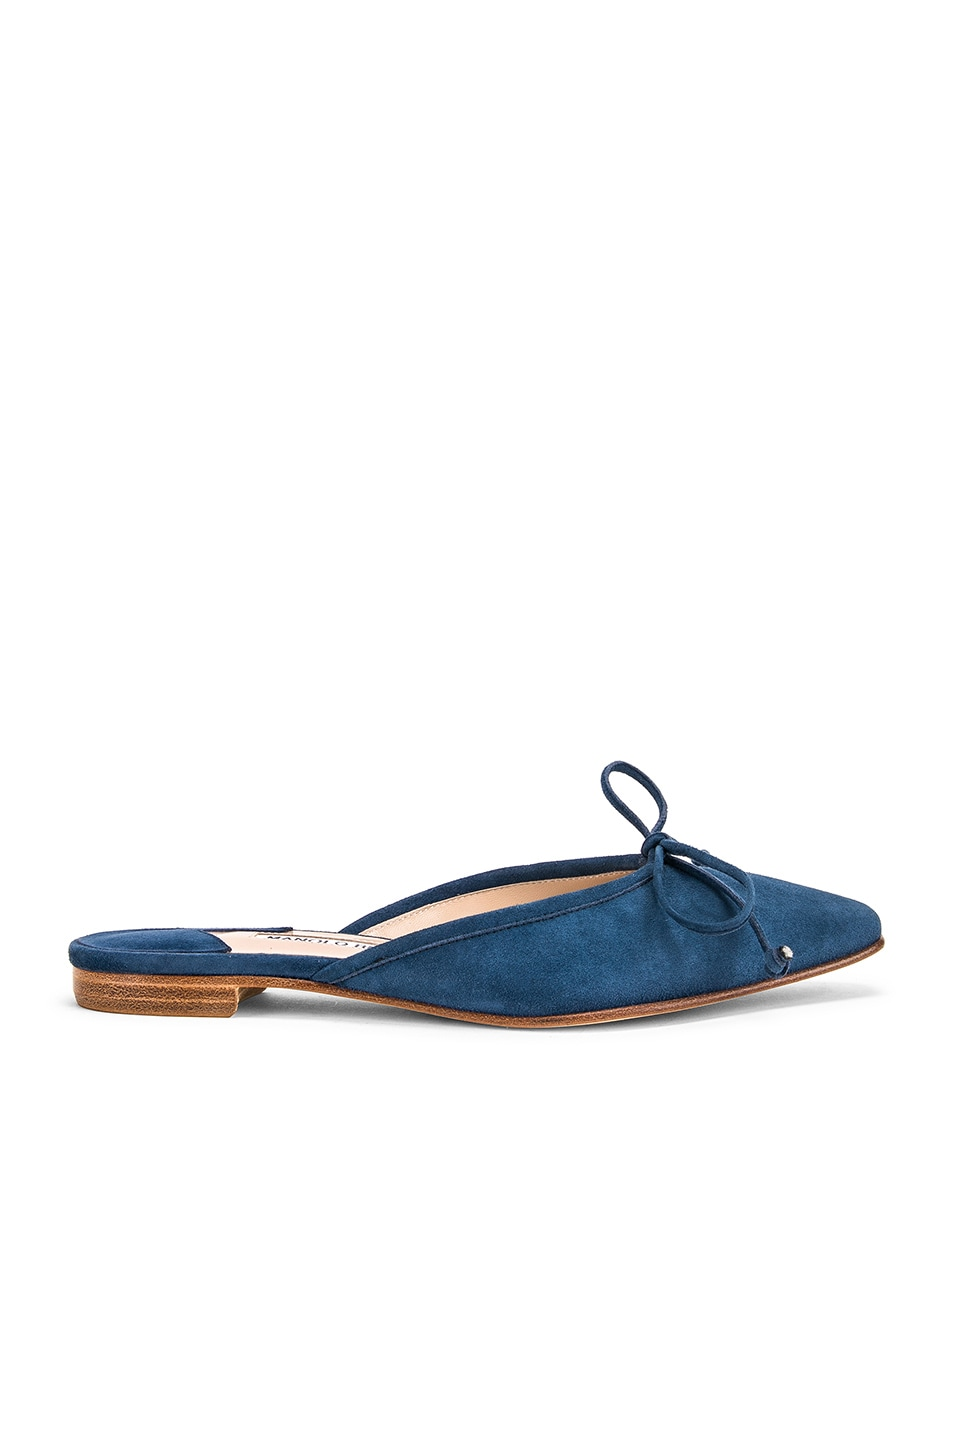 Image 1 of Manolo Blahnik Ballerimu Slide in Blue Suede